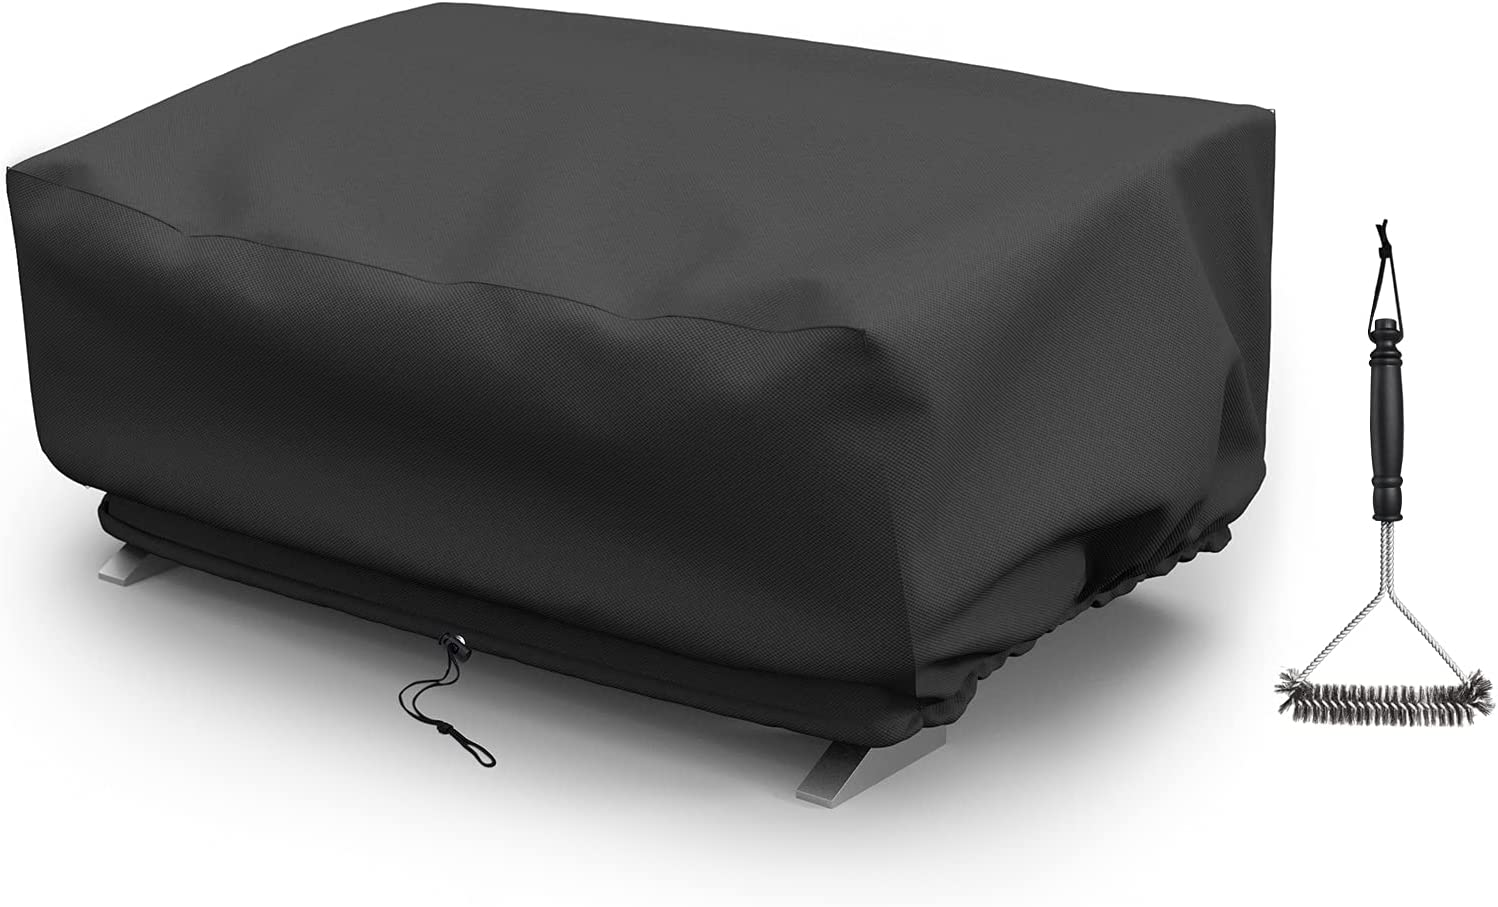 GASPRO Portable Grill Cover for Cuisinart Tablet favorite Propane CGG-306 trust